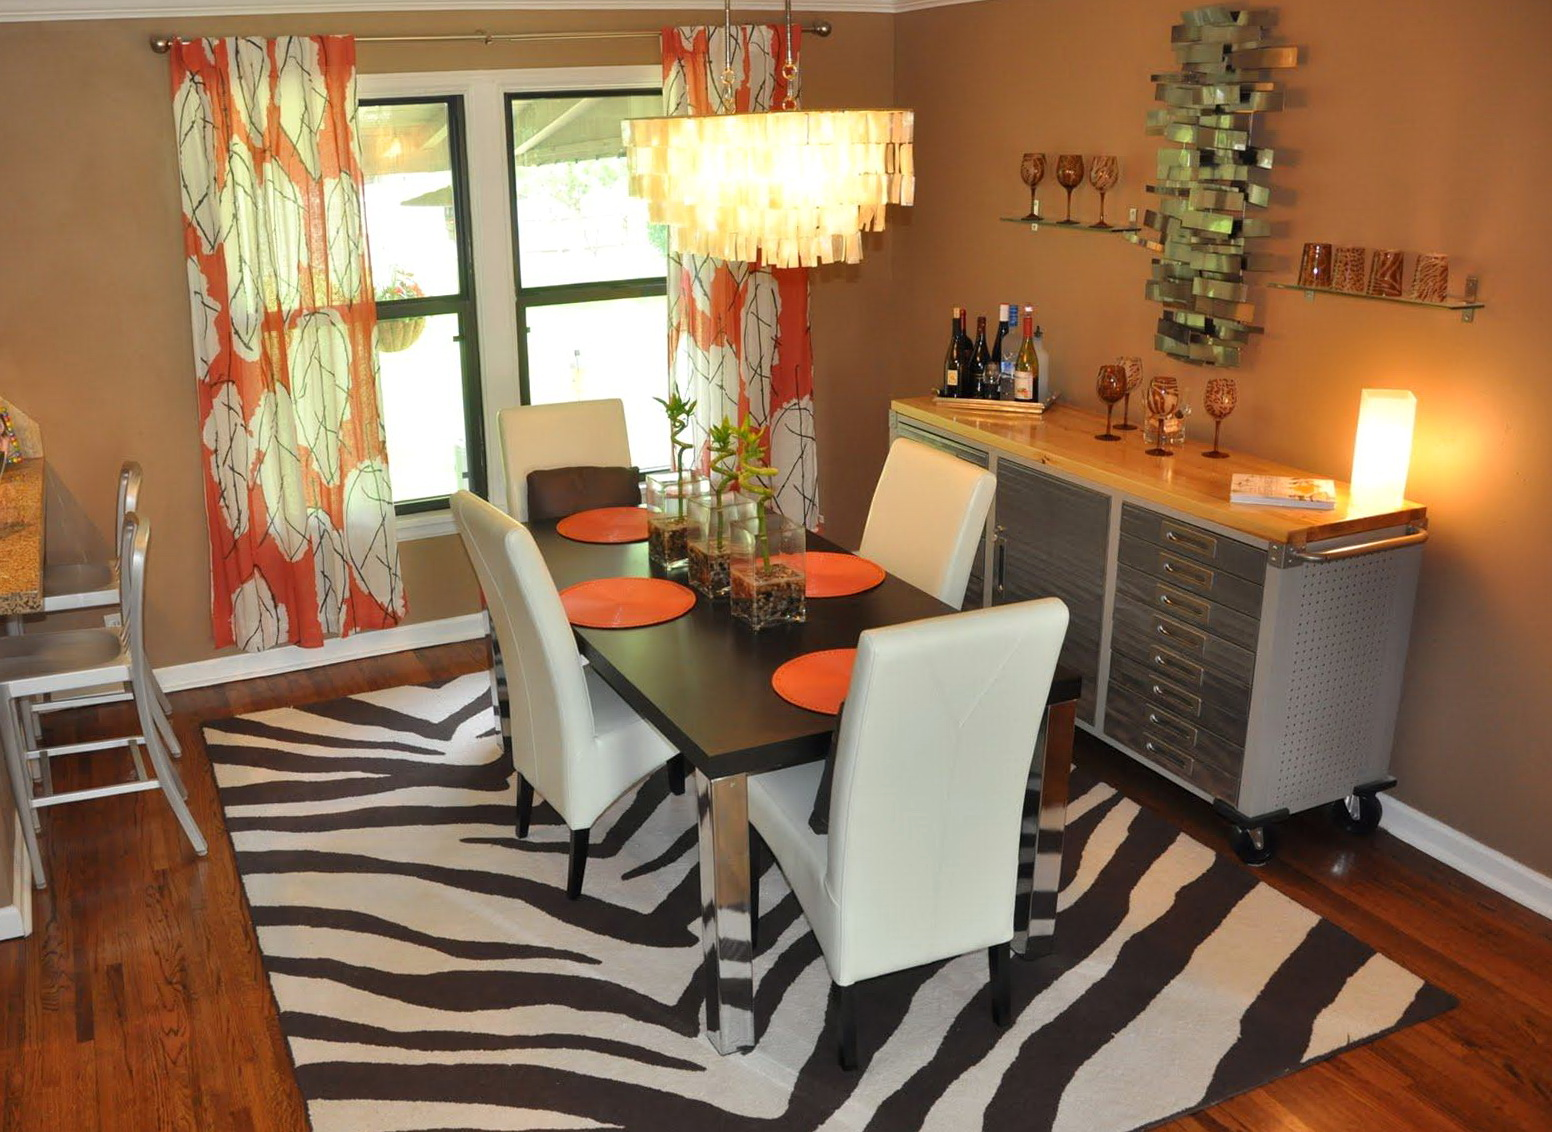 Kitchen and dining room curtains